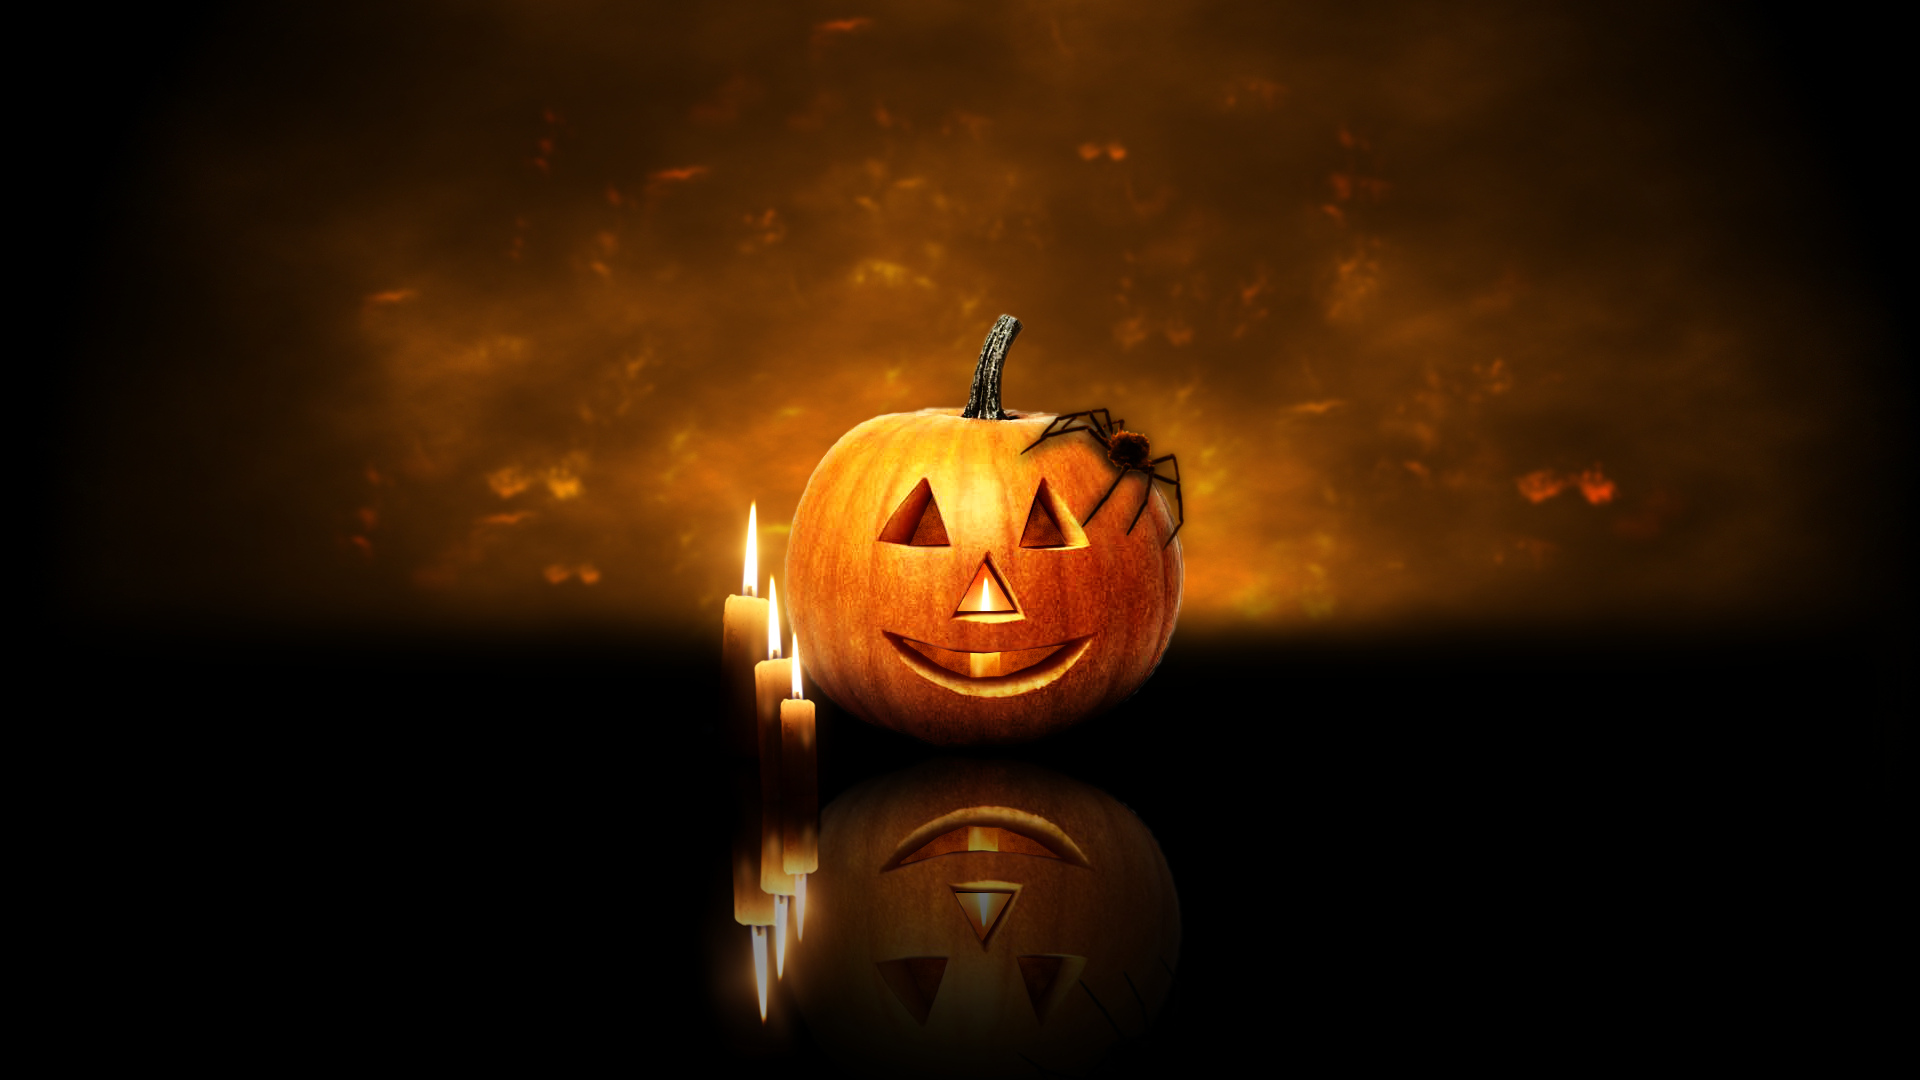 Cute Halloween Lantern Wallpaper